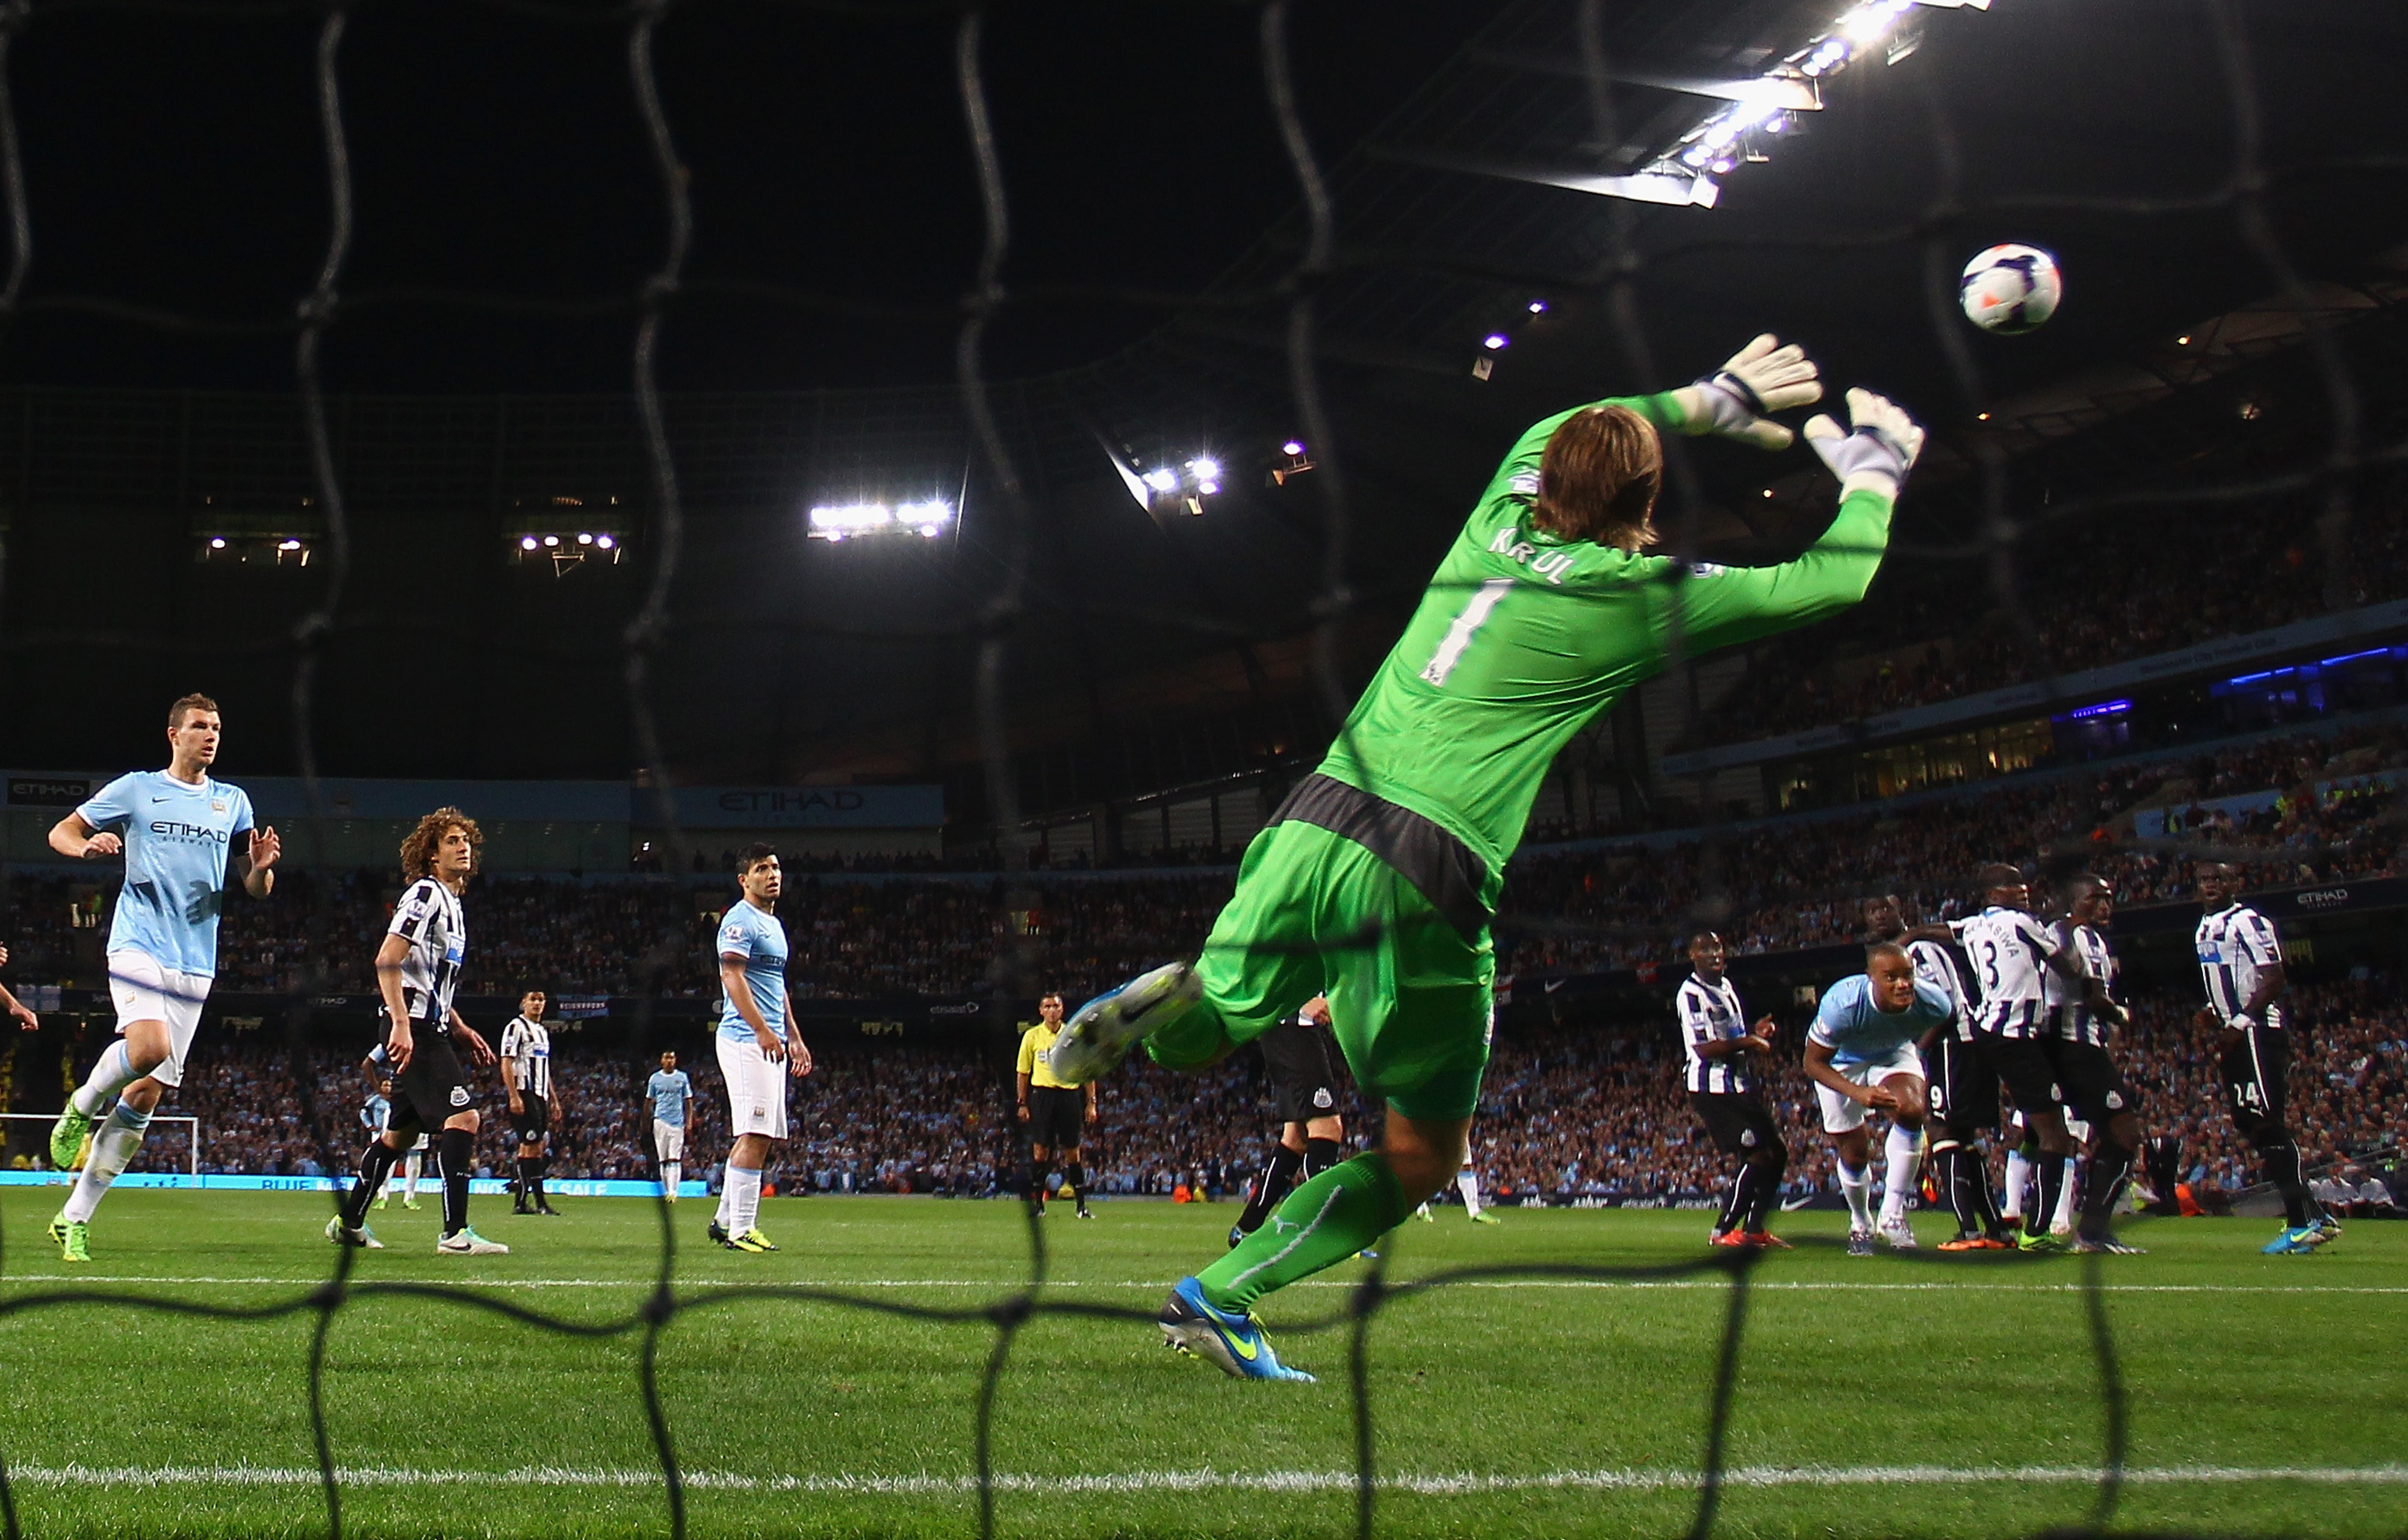 Tim Krul was named Man of the Match for making several difficult saves against Manchester City.